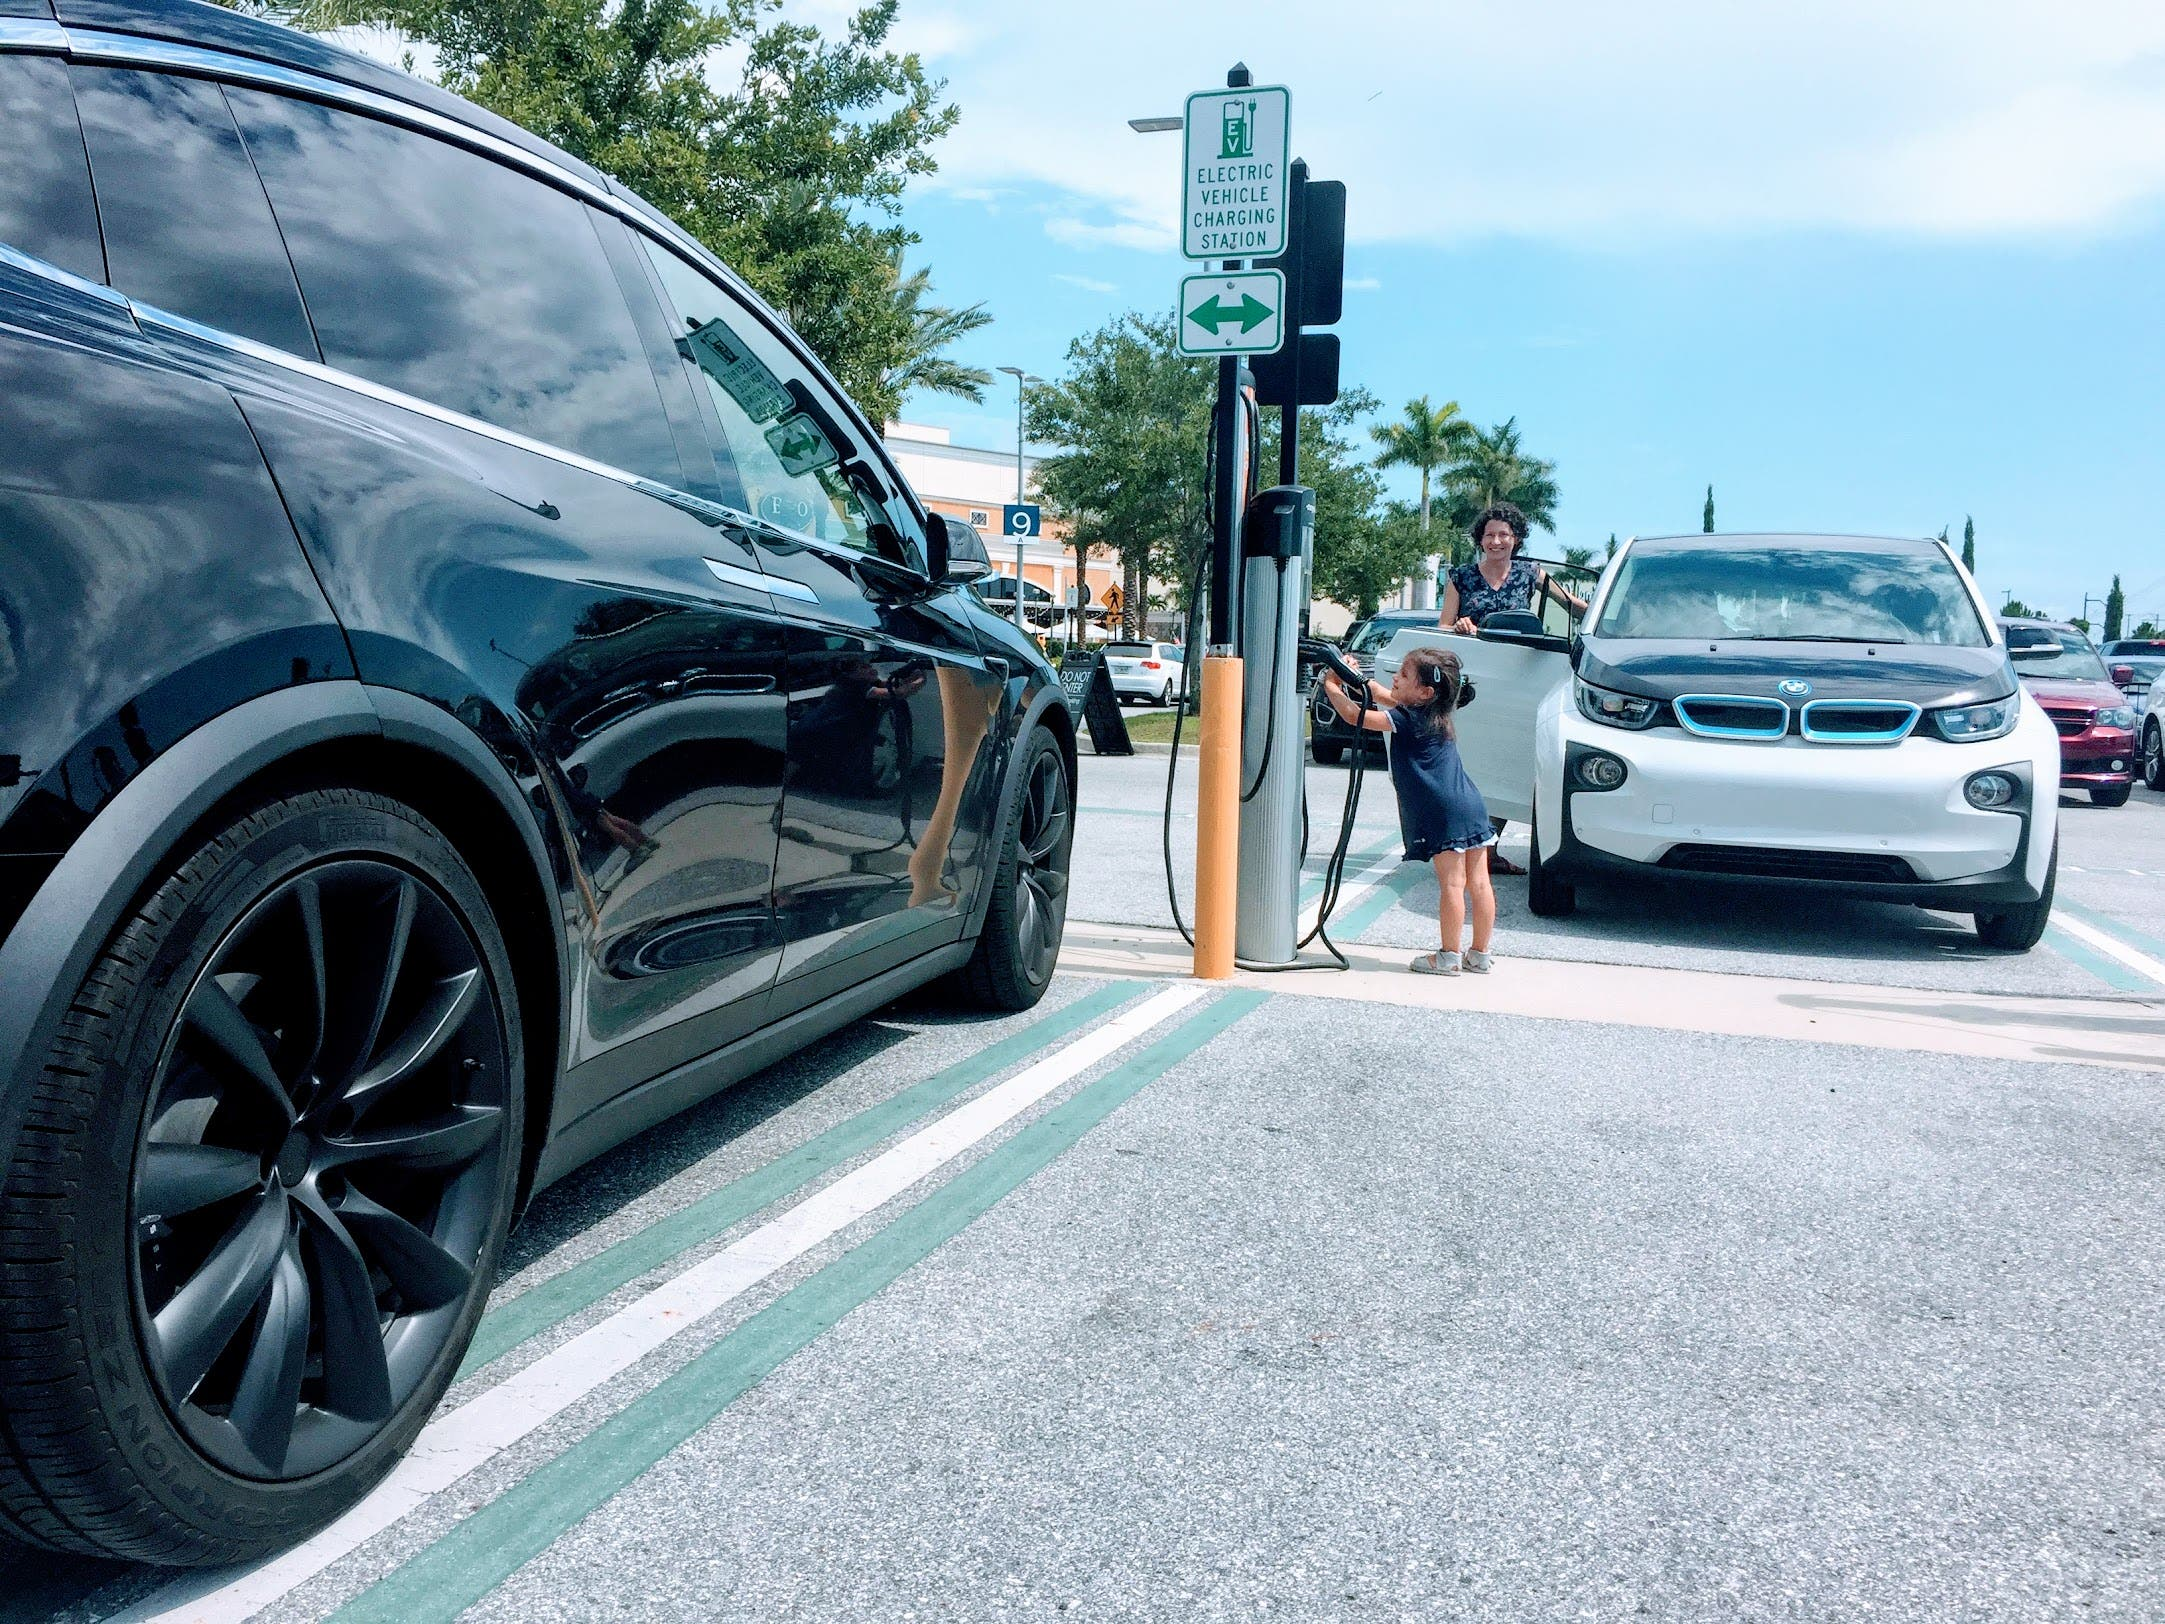 But When It Comes To Daily Ev Life In Sarasota Florida Chargepoint Is King And I M Sure That S The Case A Large Number Of Cities Across Country